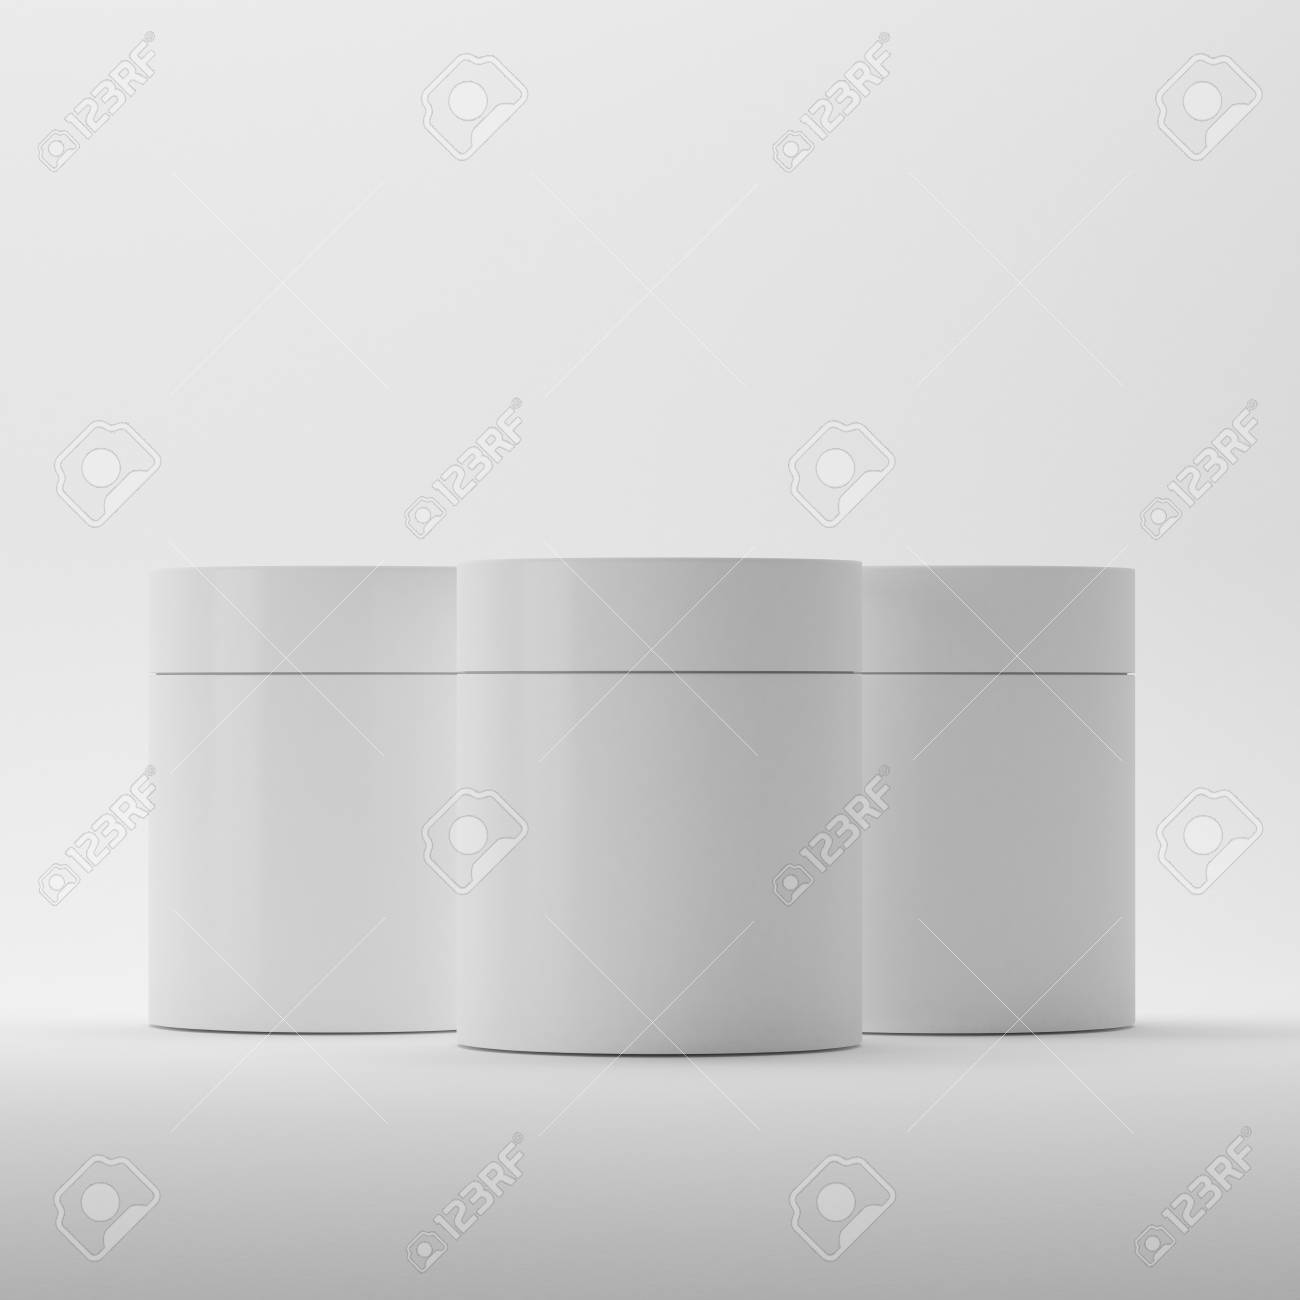 Blank Cosmetic Package Container For Cream Medicine Or Gel On